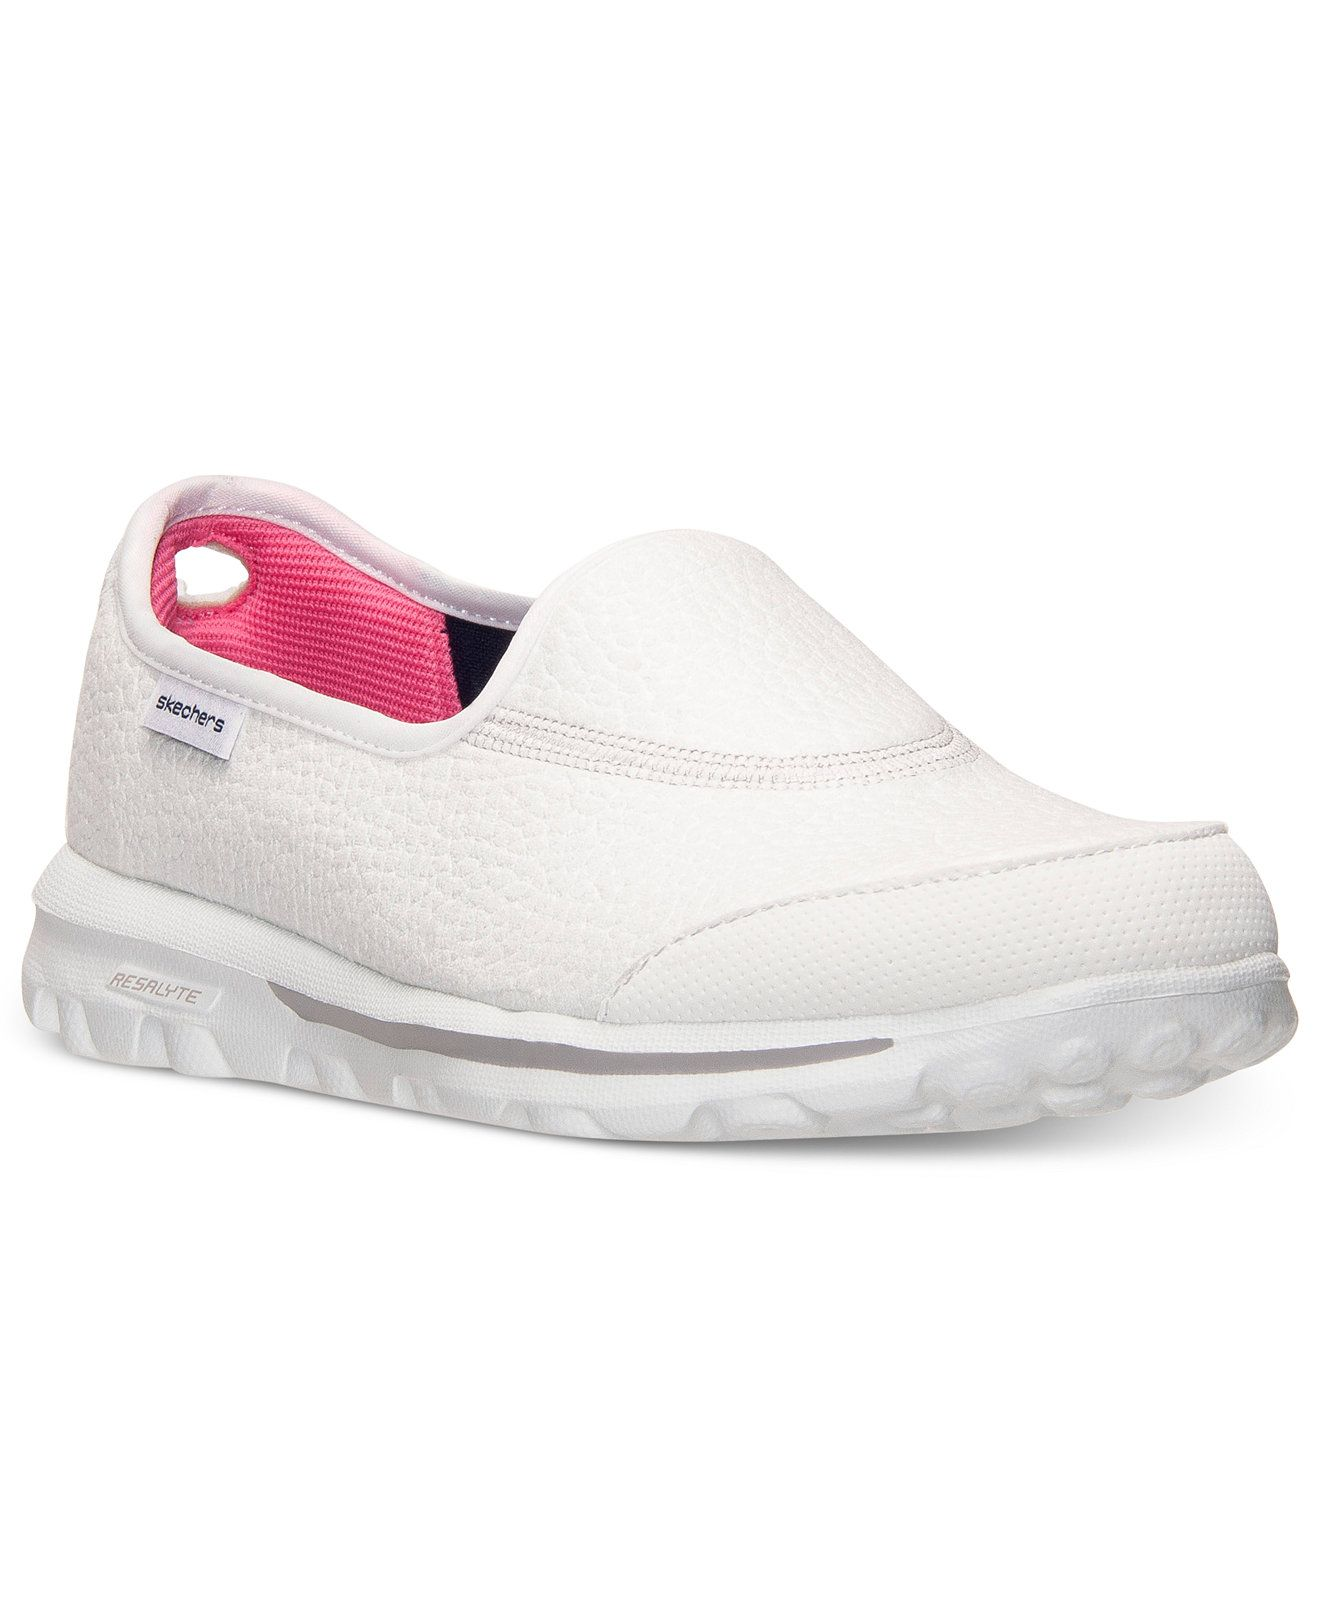 Skechers Women S Gowalk Aspire Memory Foam Walking Sneakers From